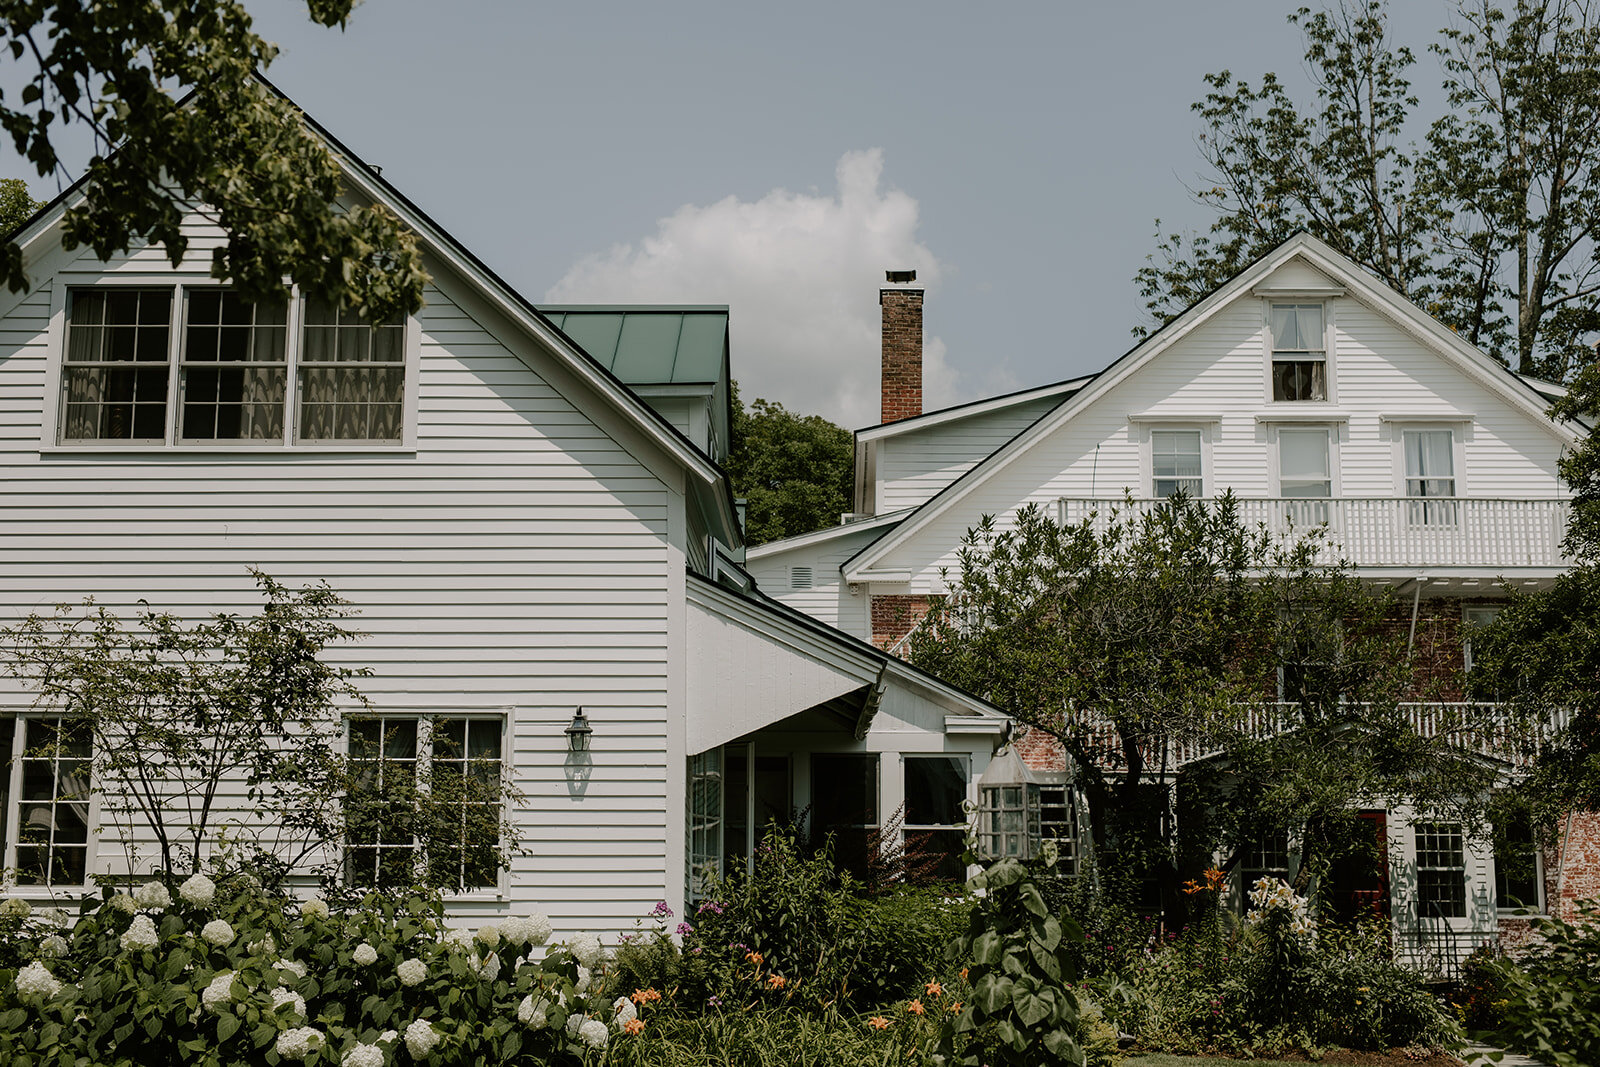 Windham Hill Inn Wedding in Townshed, Vermont - Pearl Weddings & Events